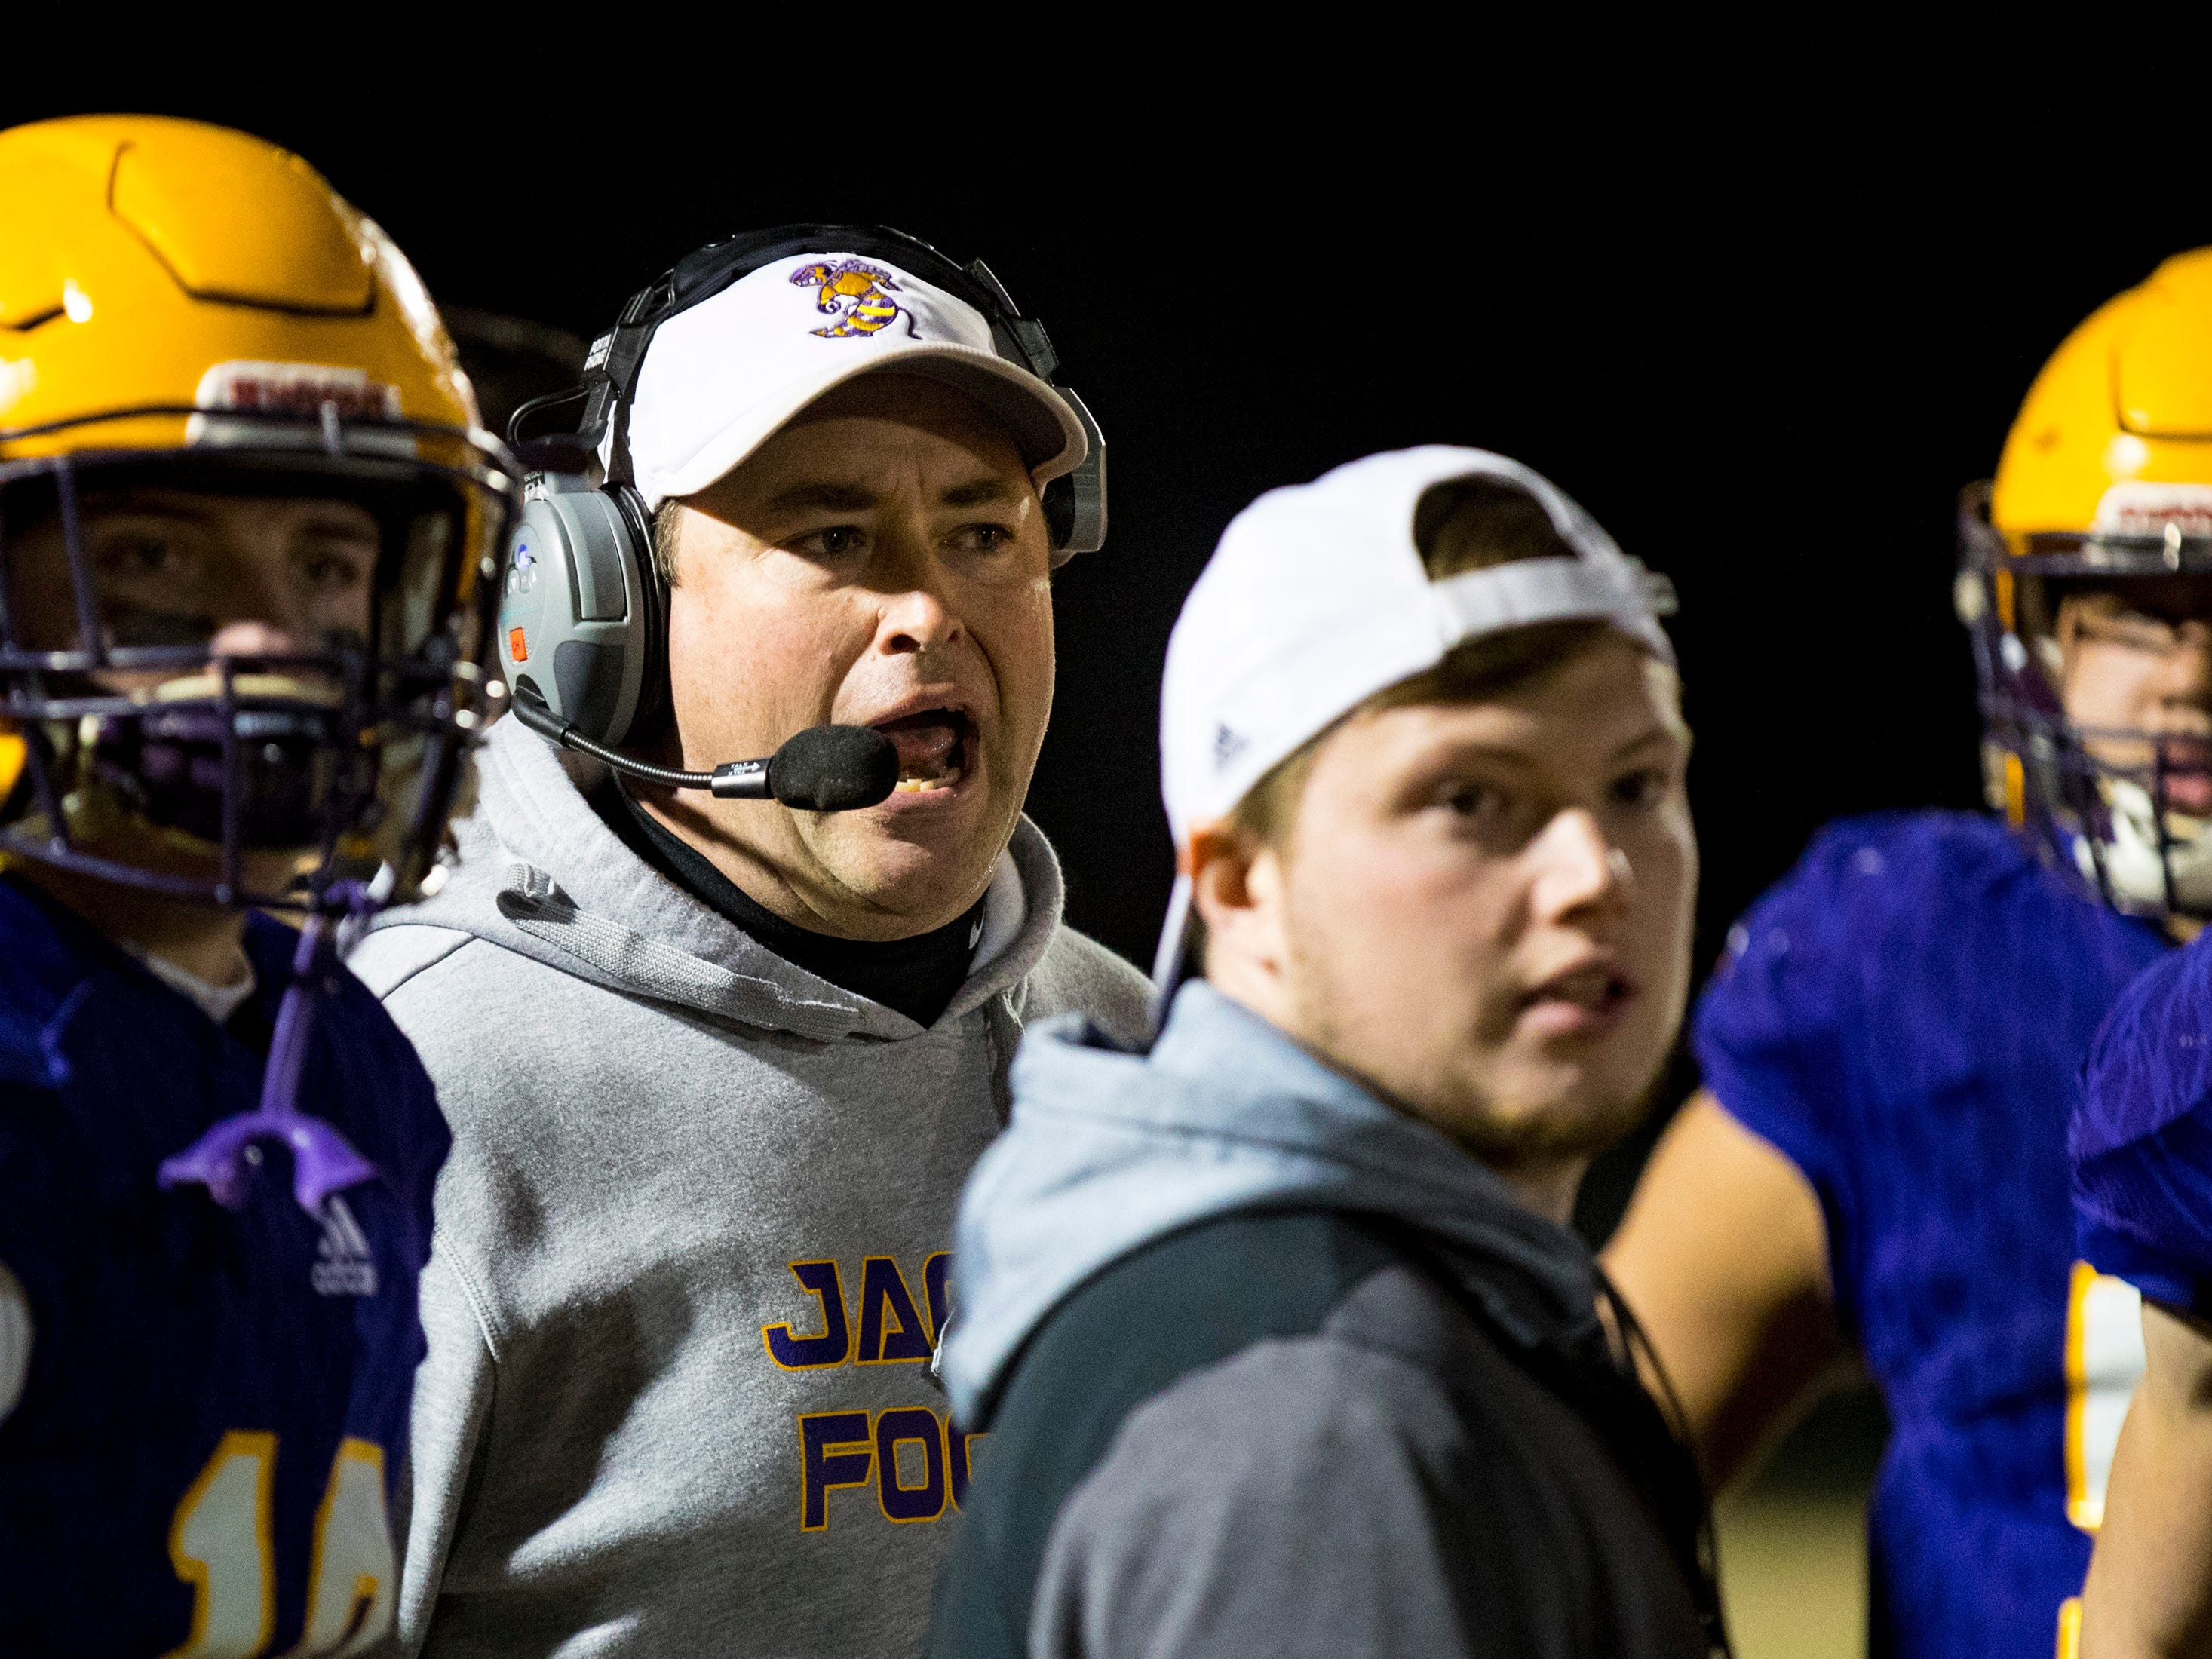 Trousdale County's head coach Brad Waggoner during Trousdale County's game against Meigs County at Jim Satterfield Stadium in Hartsville on Friday, Nov. 23, 2018.